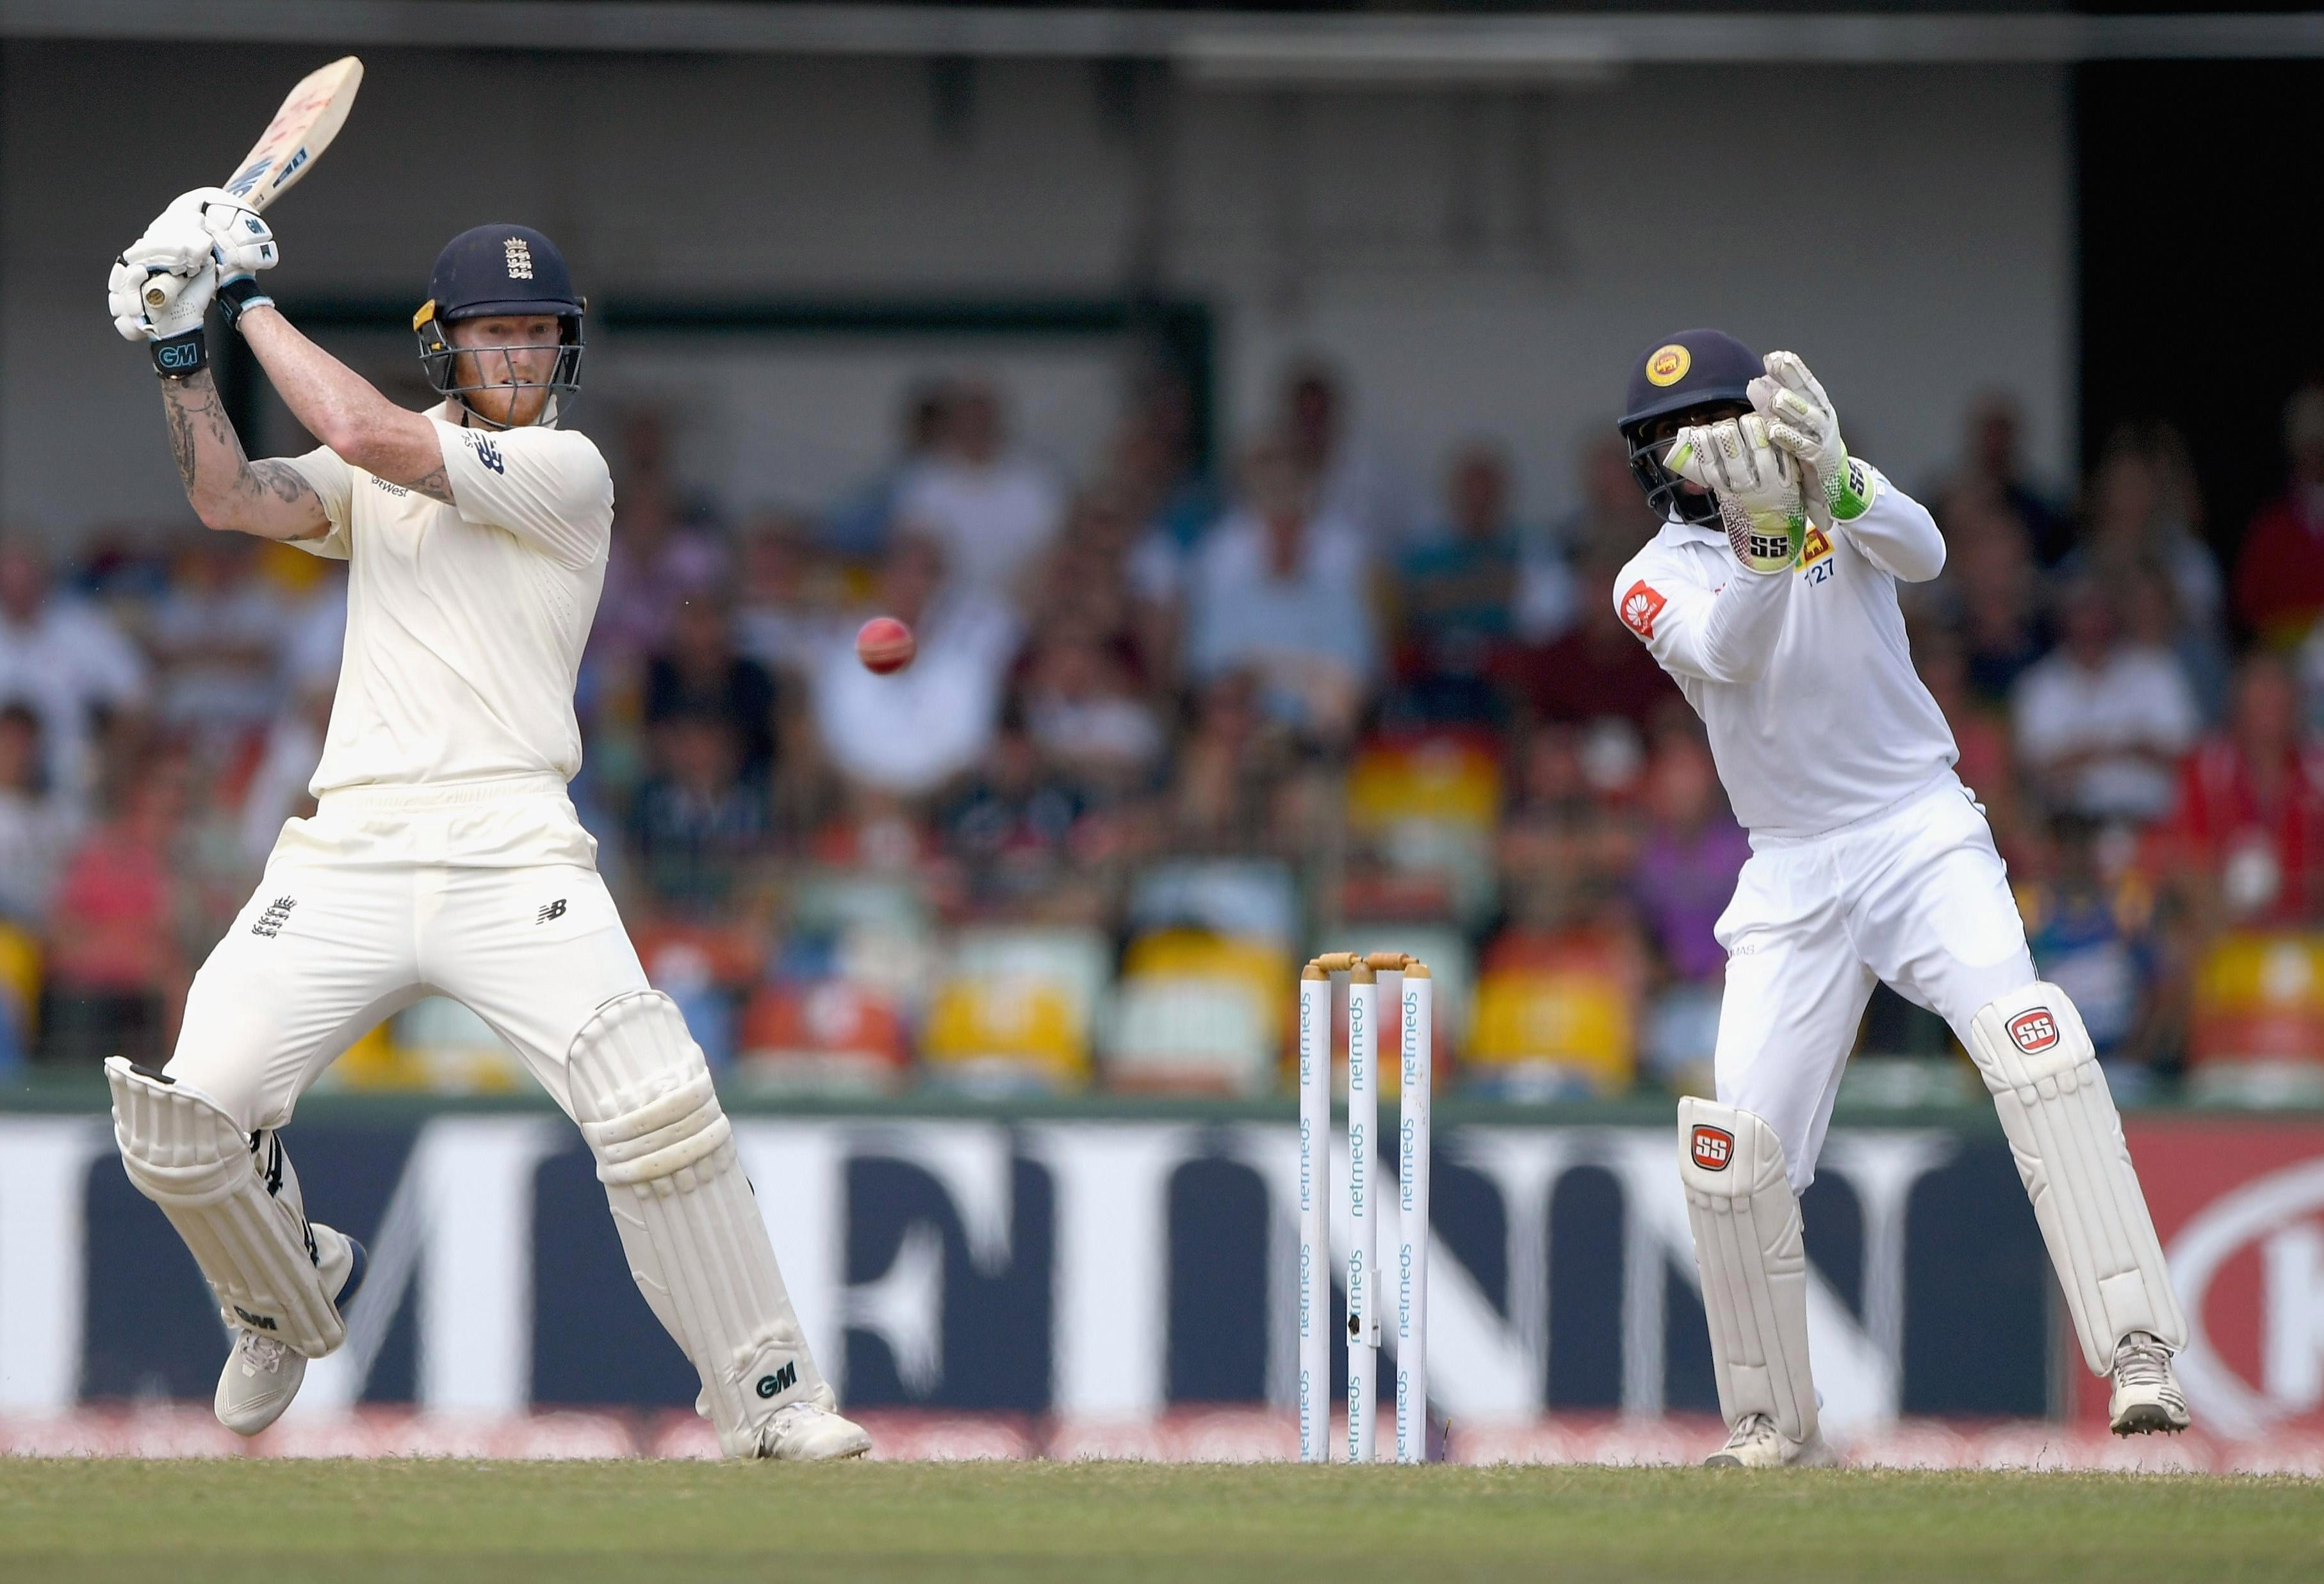 Ben Stokes also hit some crucial runs as England took a 326-run lead